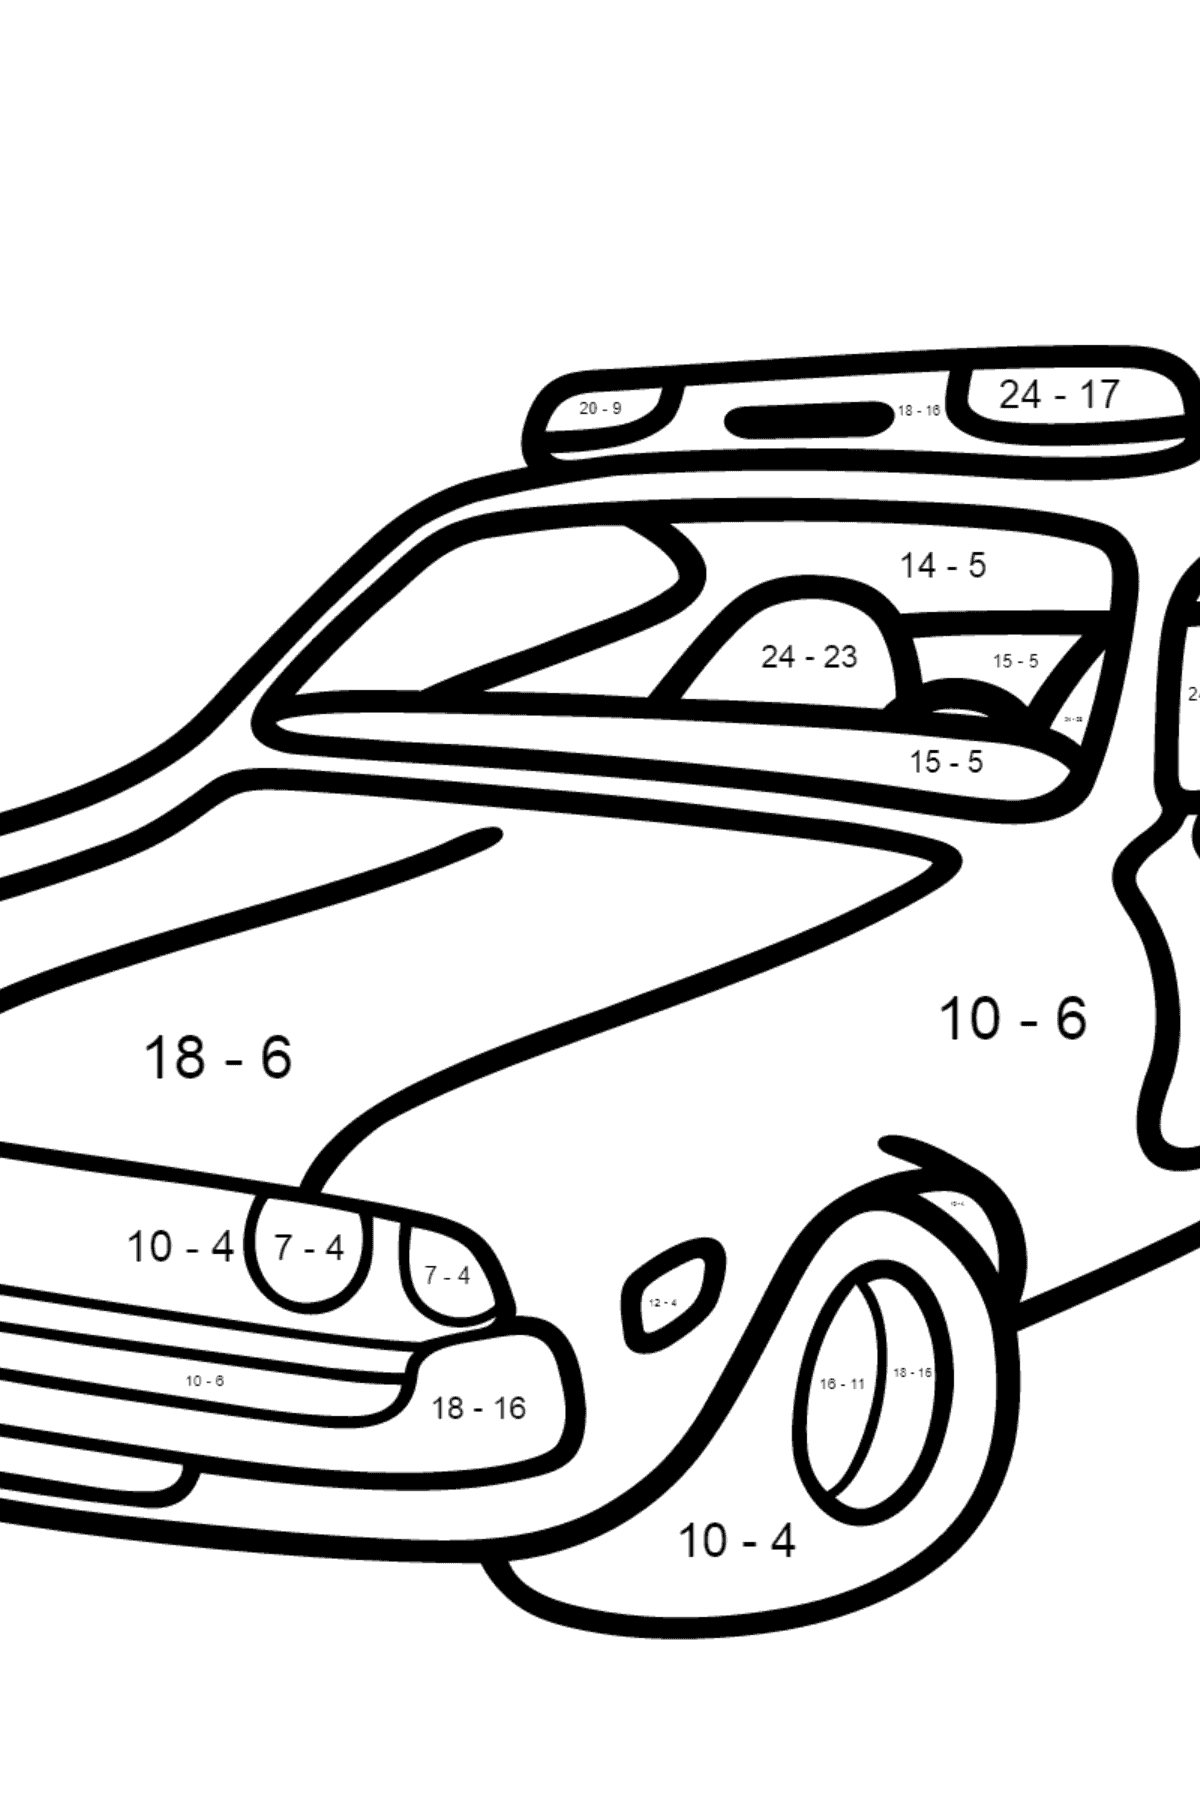 Coloring Page - A Dark Gray Police Car for Children  - Color by Number Substraction